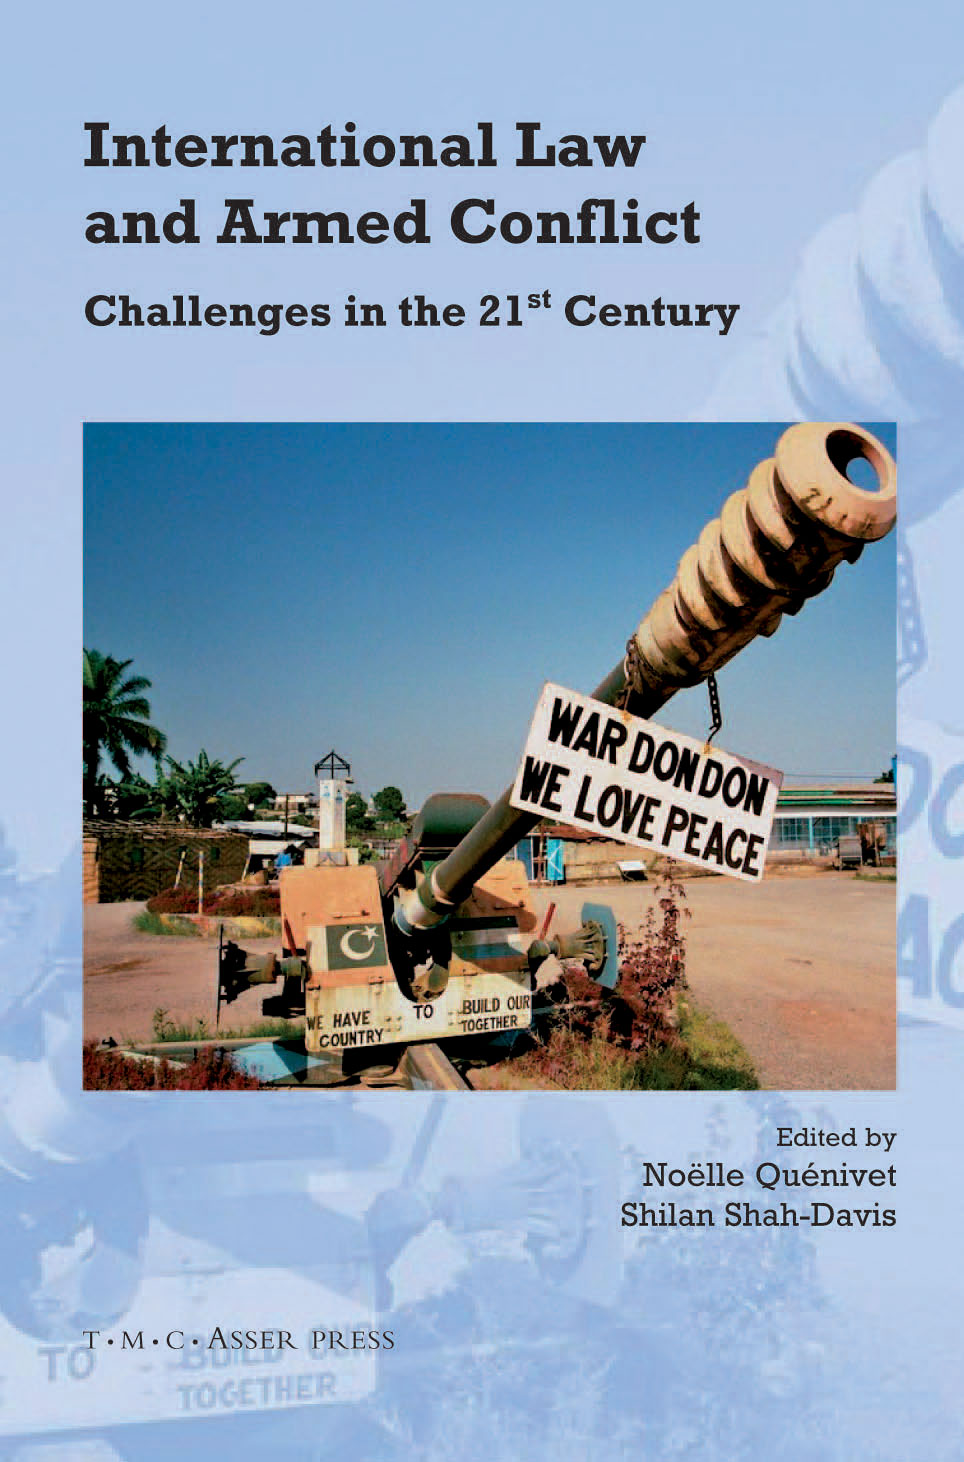 International Law and Armed Conflict - Challenges in the 21st Century